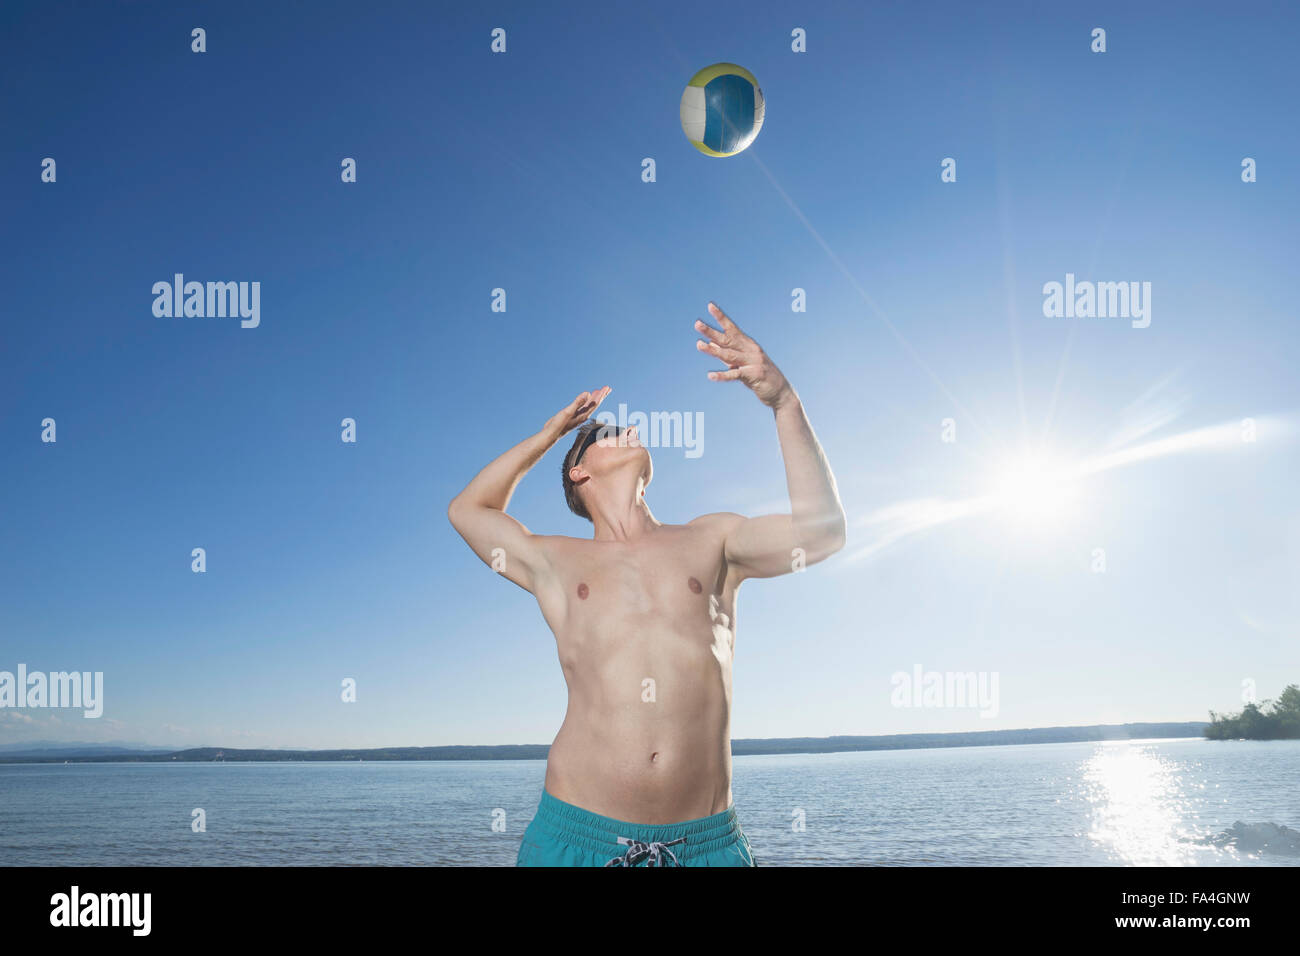 Mature man playing volleyball on the lake, Bavaria, Germany Stock Photo